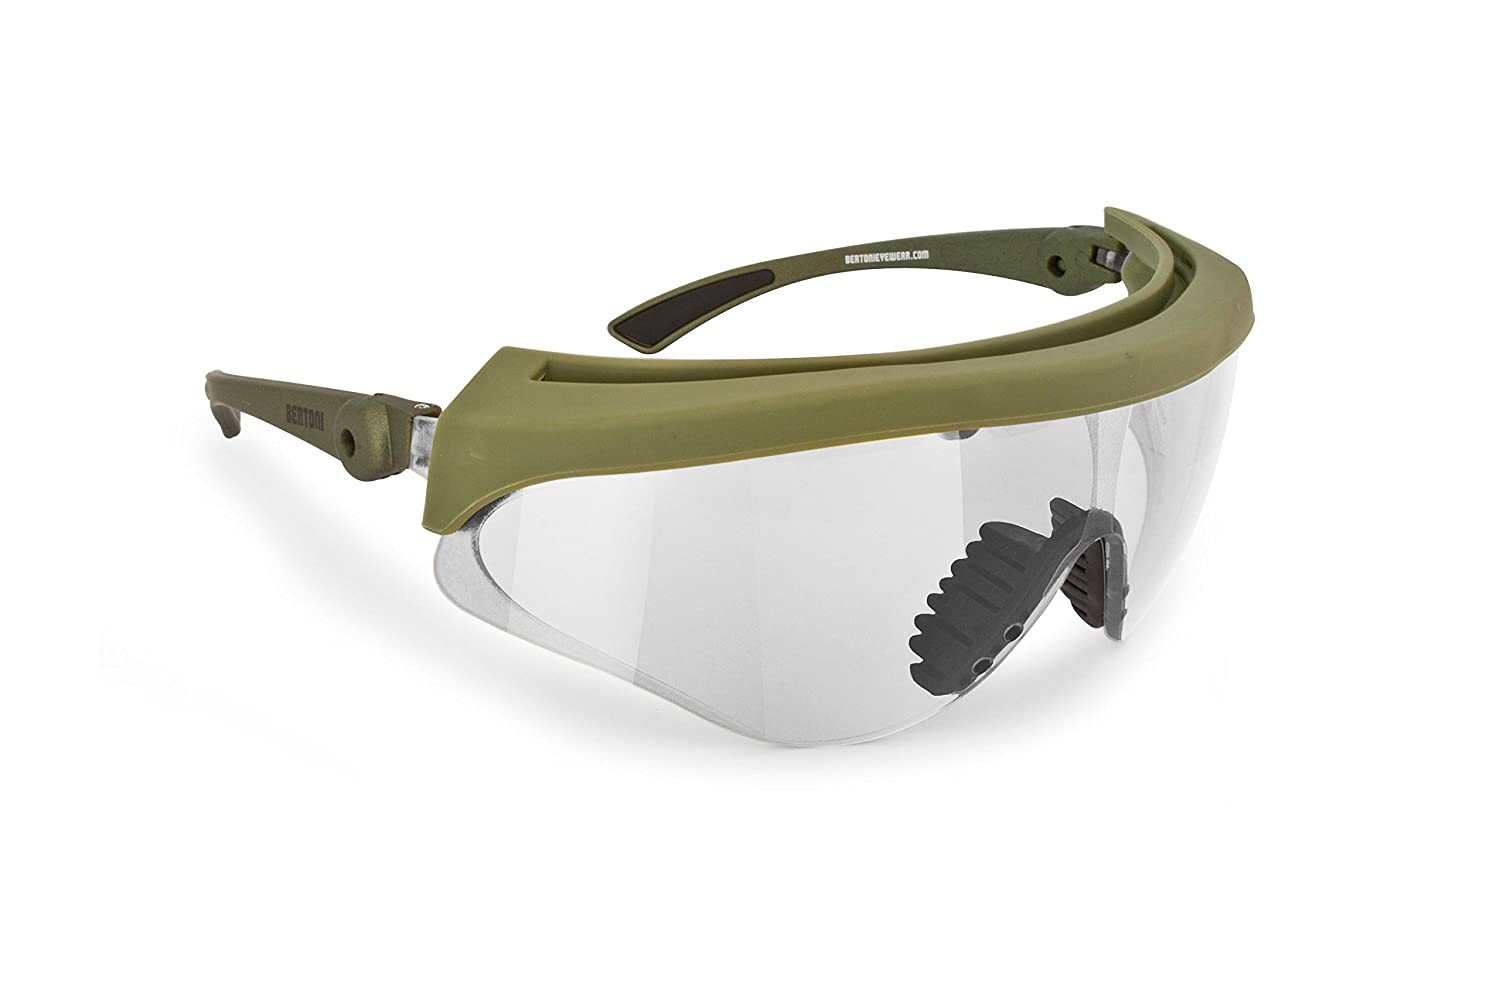 e77dfac9d2 Bertoni Shooting Glasses Shatterproof and Antifog Lens - Adjustable Lens   Angle - AF869 Italy - Tactical Safety Protective Glasses (Clear Lens) - -  Amazon. ...